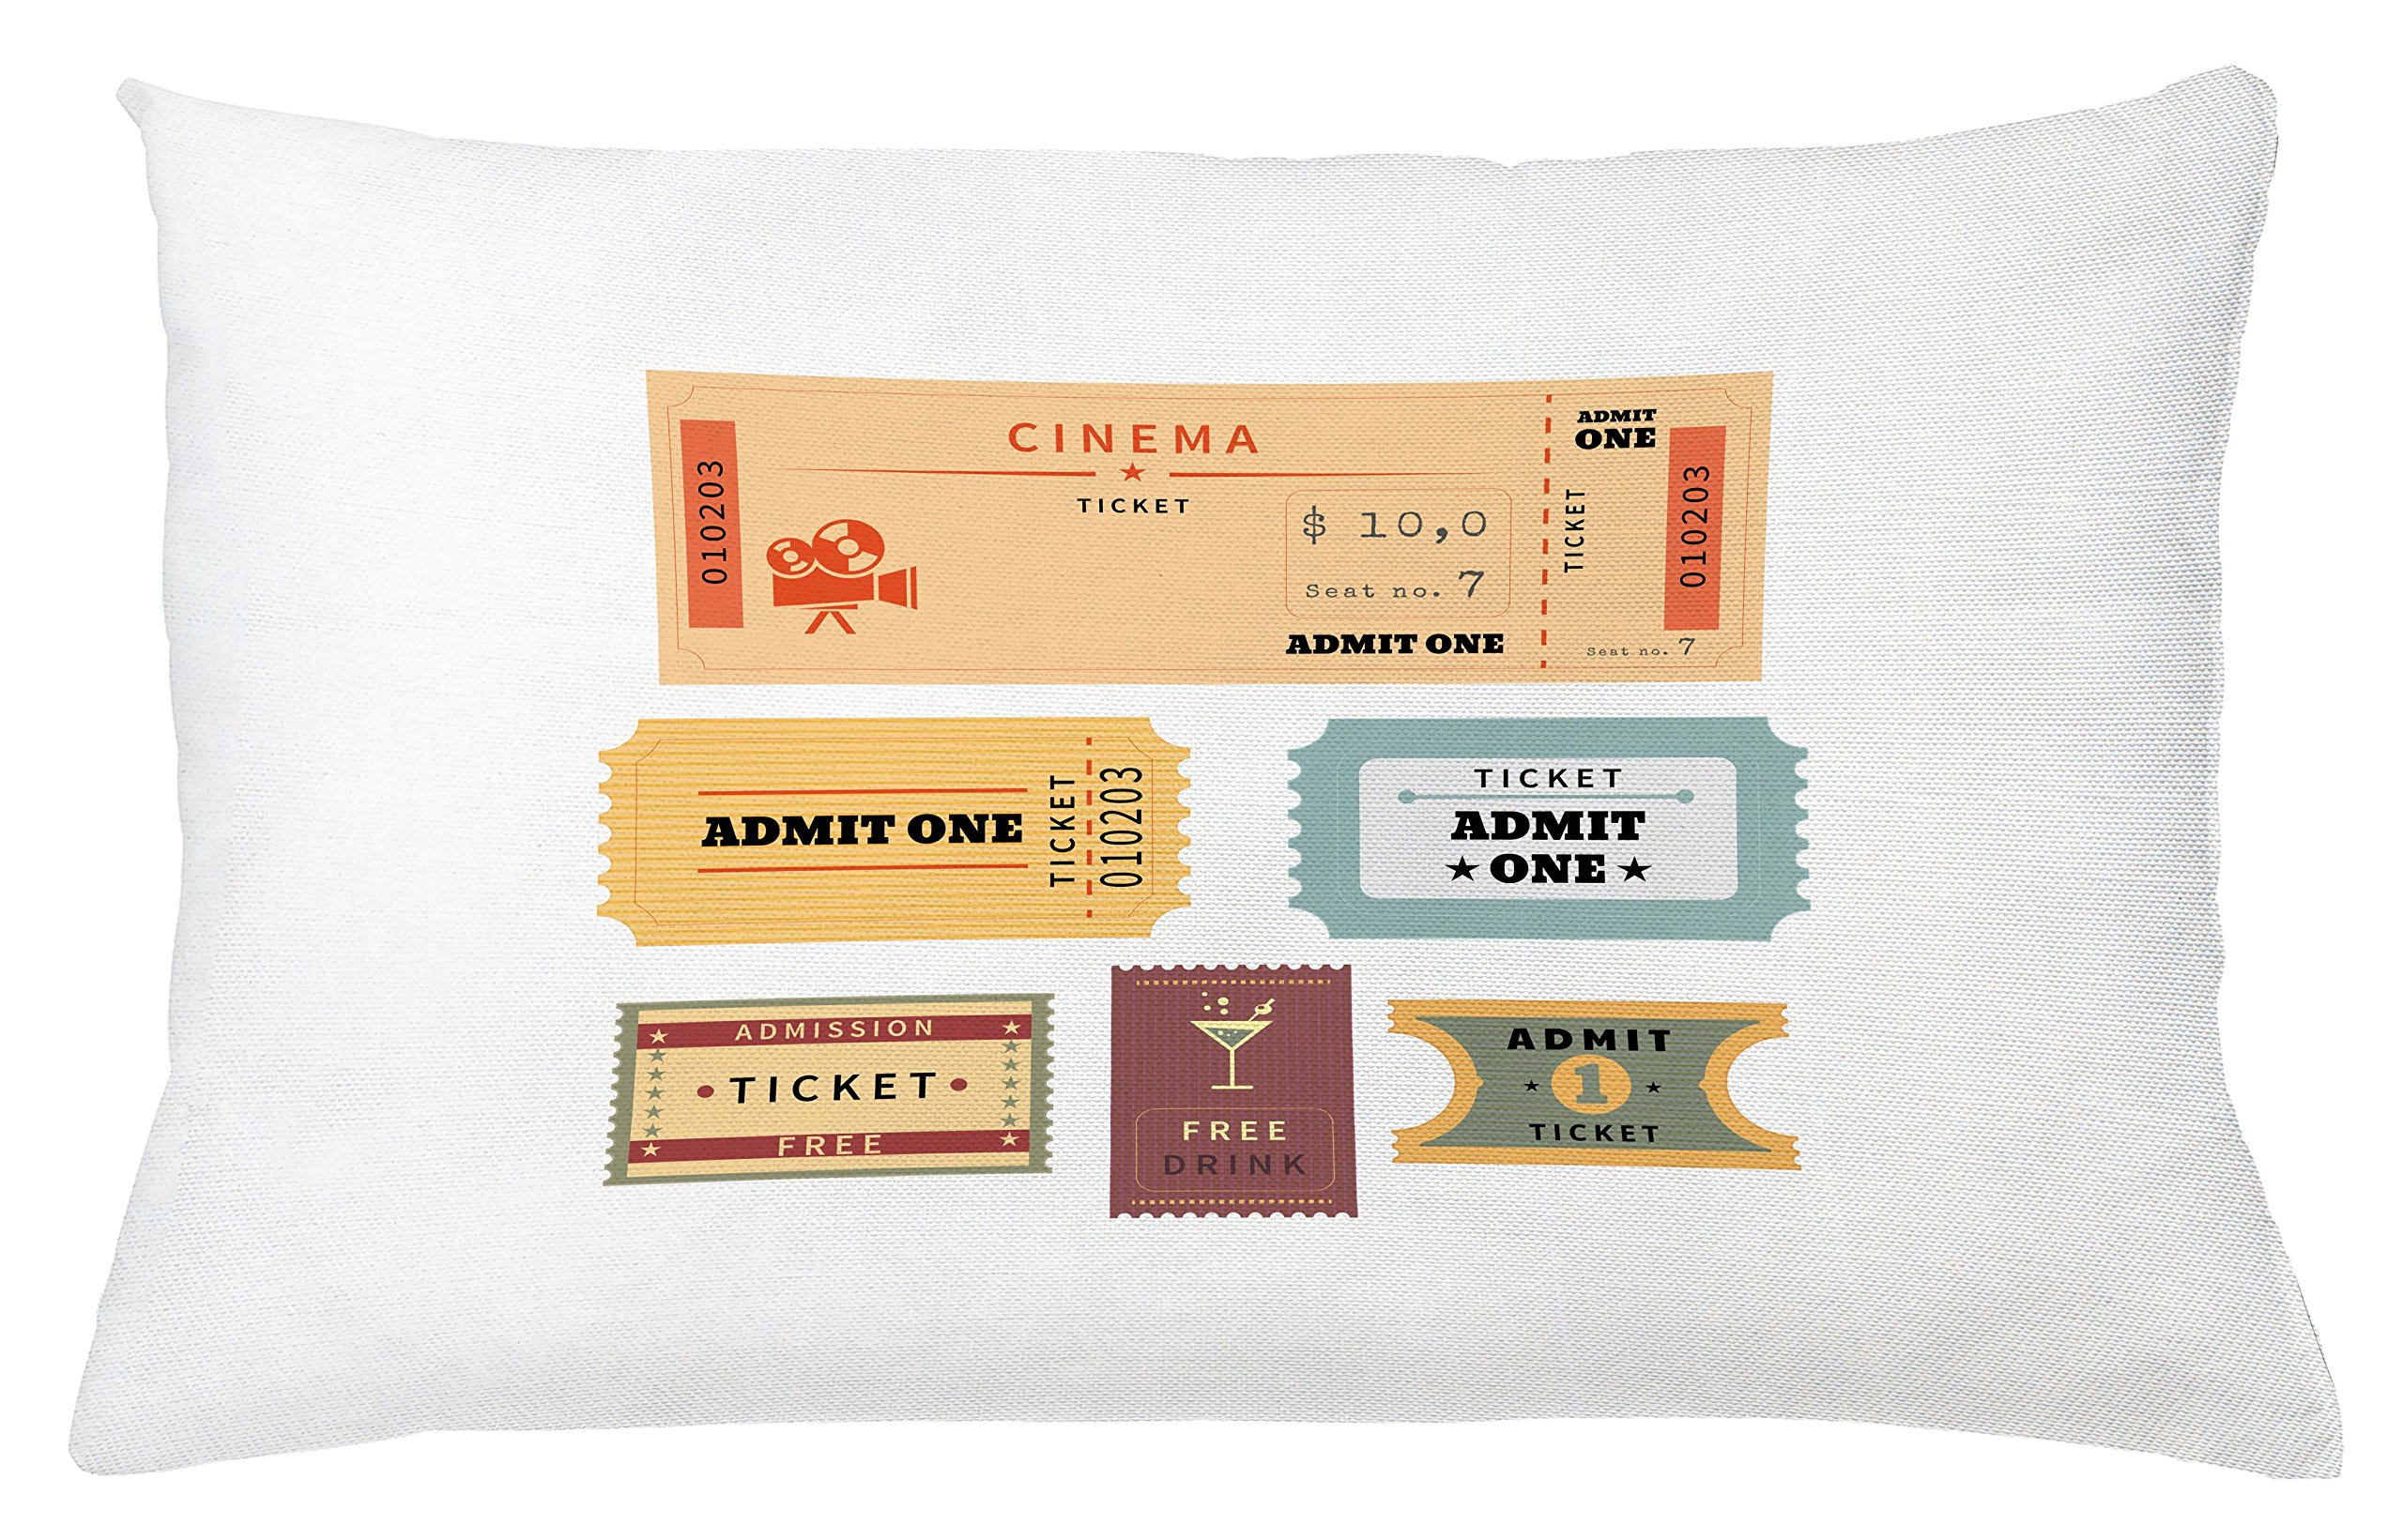 Ambesonne Movie Theater Throw Pillow Cushion Cover, Different Retro Tickets for Cinema and Other Events Vintage Illustration, Decorative Square Accent Pillow Case, 26 X 16 inches, Multicolor